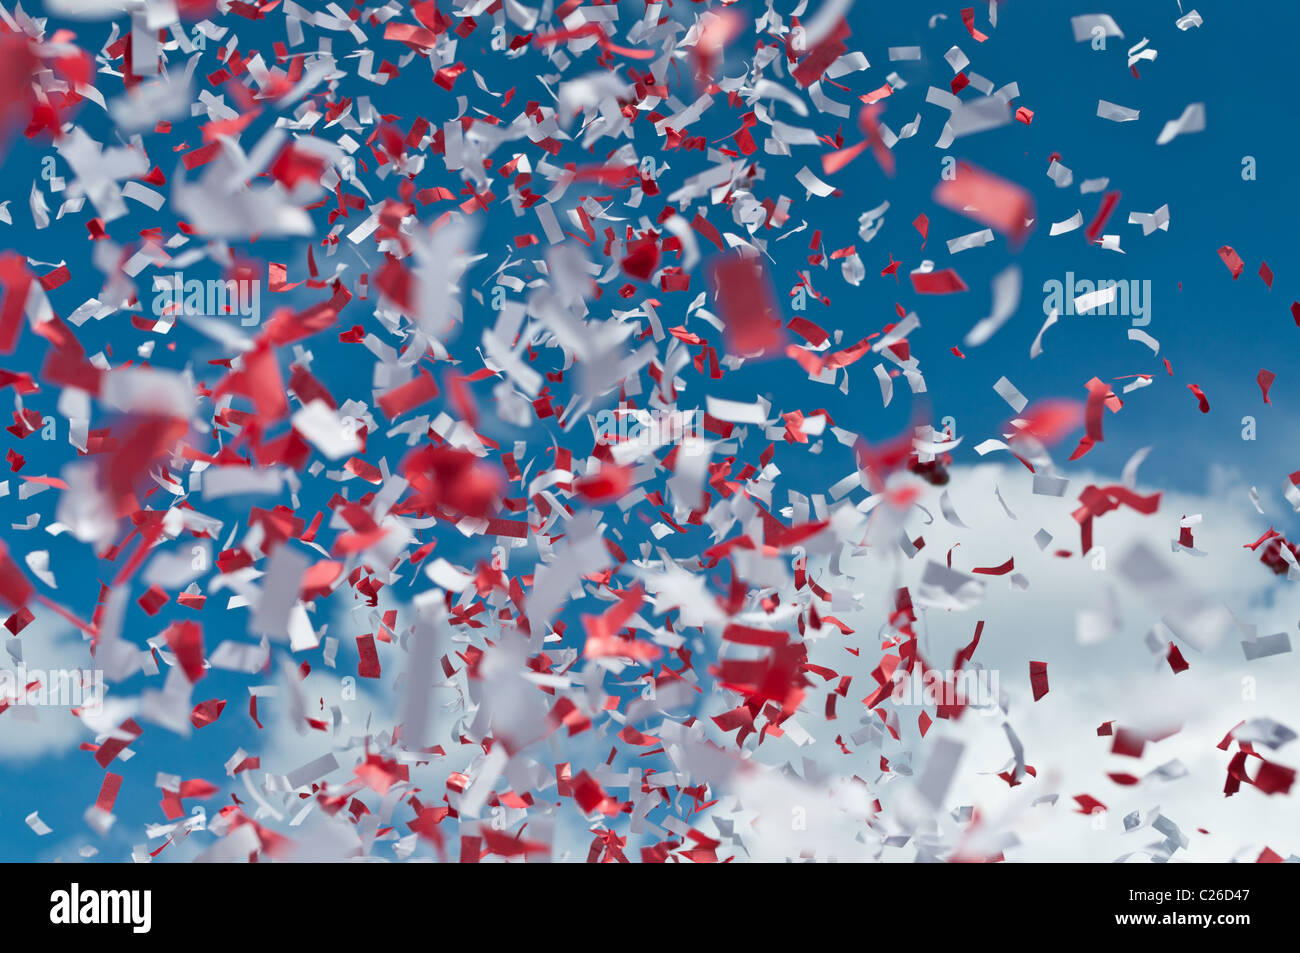 Red and white strips of paper confetti fill the air with a blue sky and white clouds in the background. - Stock Image